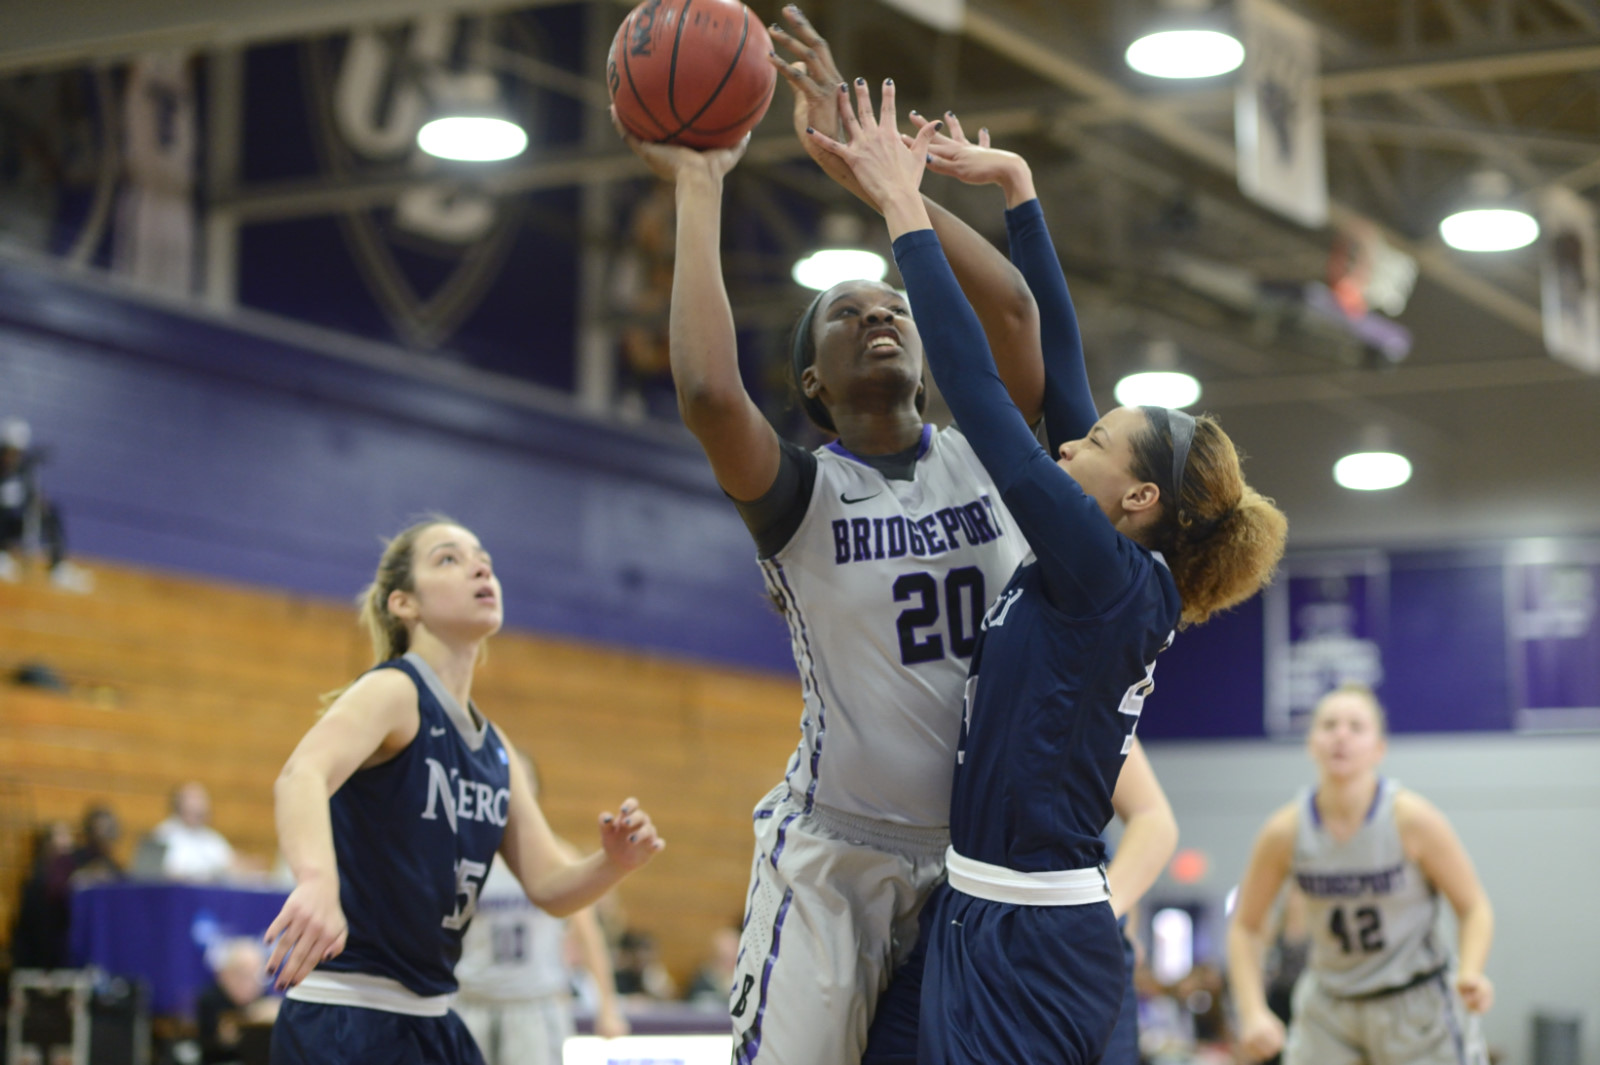 Late Push Helps Women's Basketball End Losing Streak With 72-69 Victory At LIU Post